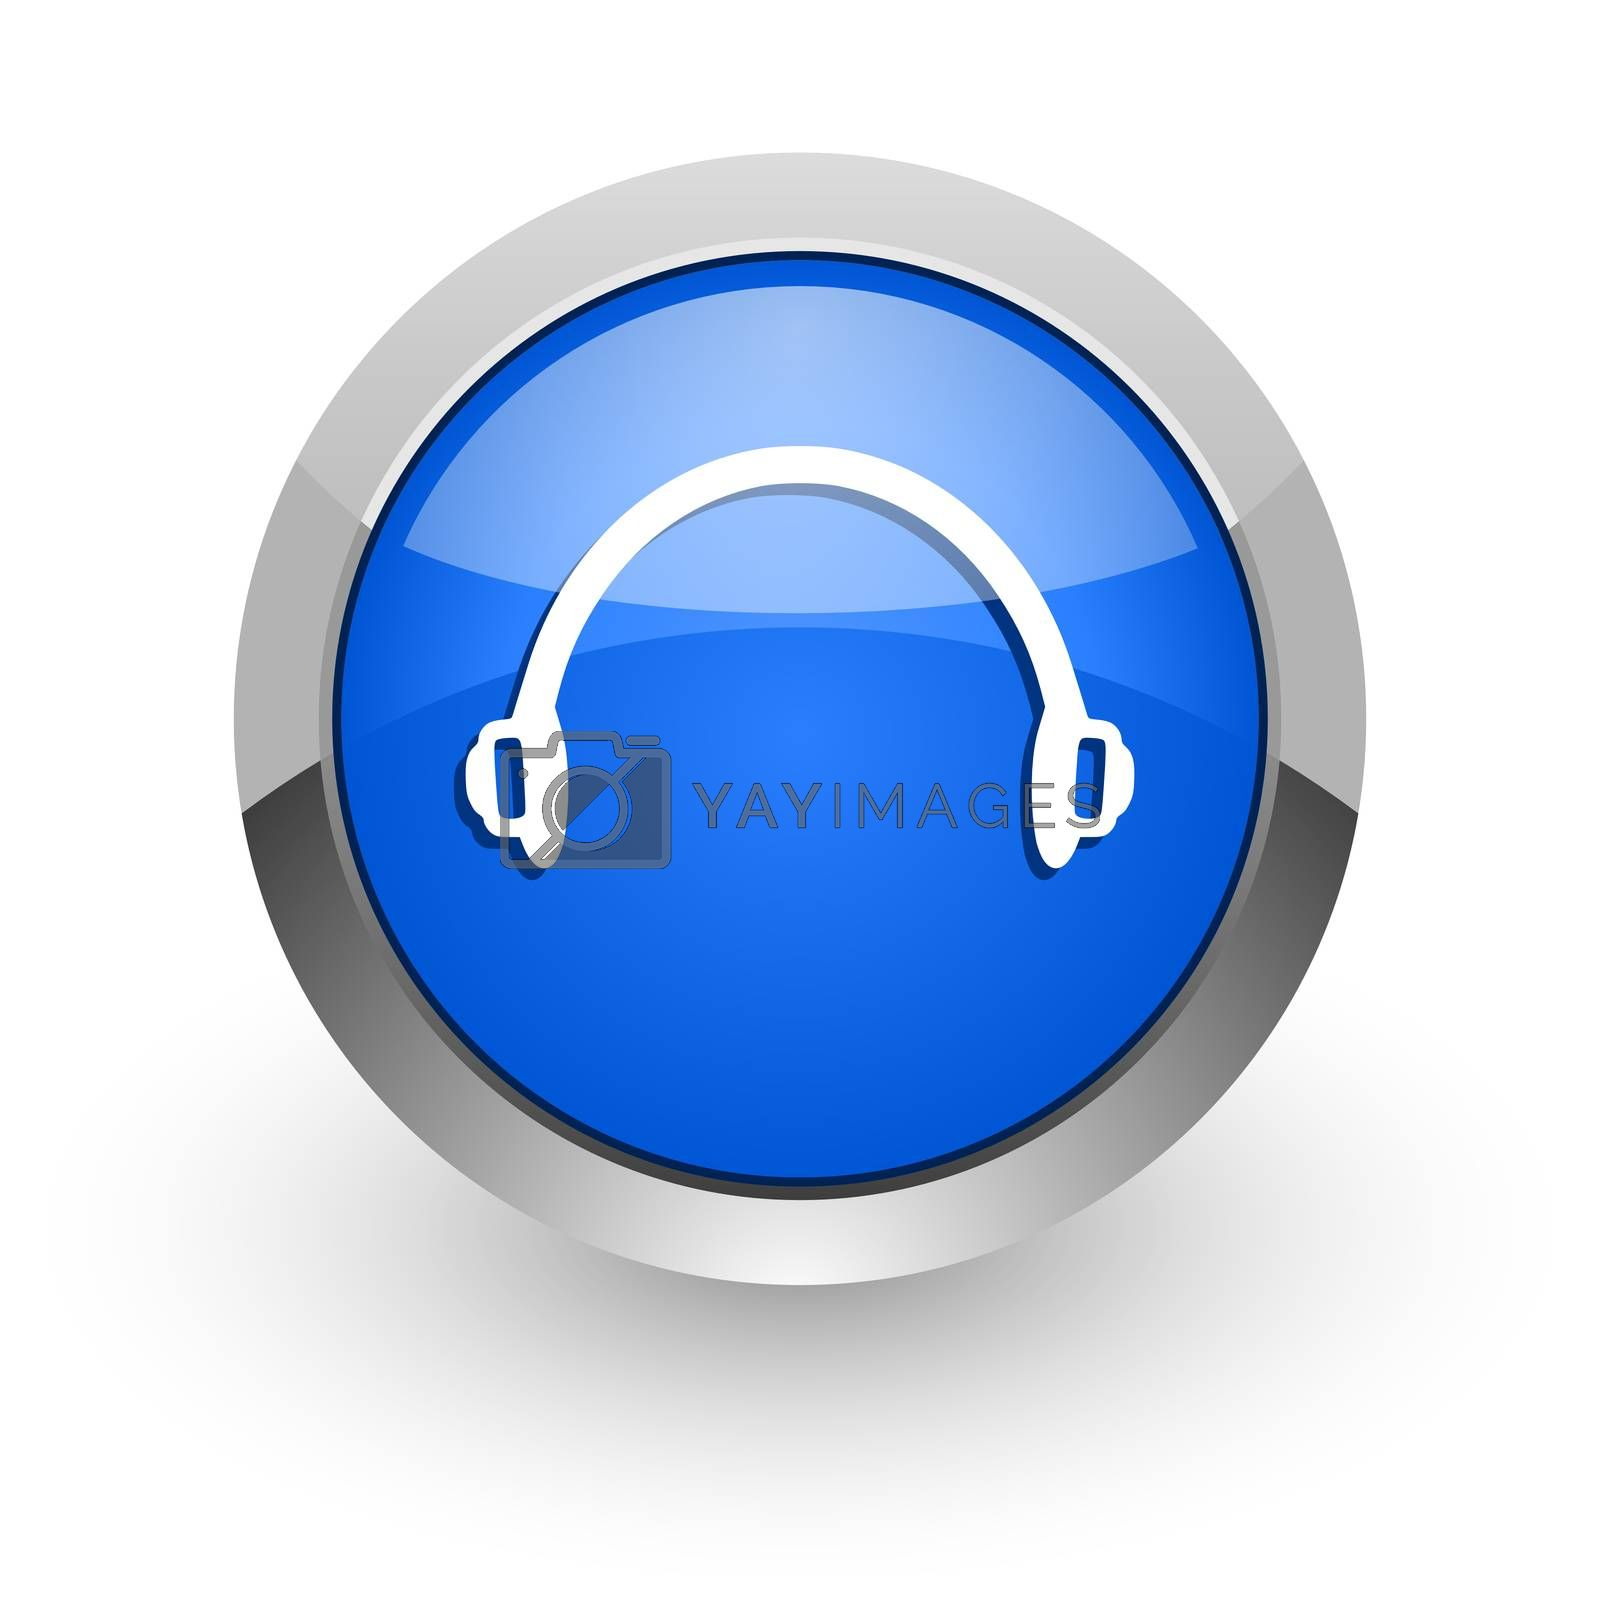 Royalty free image of headphones blue glossy web icon by alexwhite